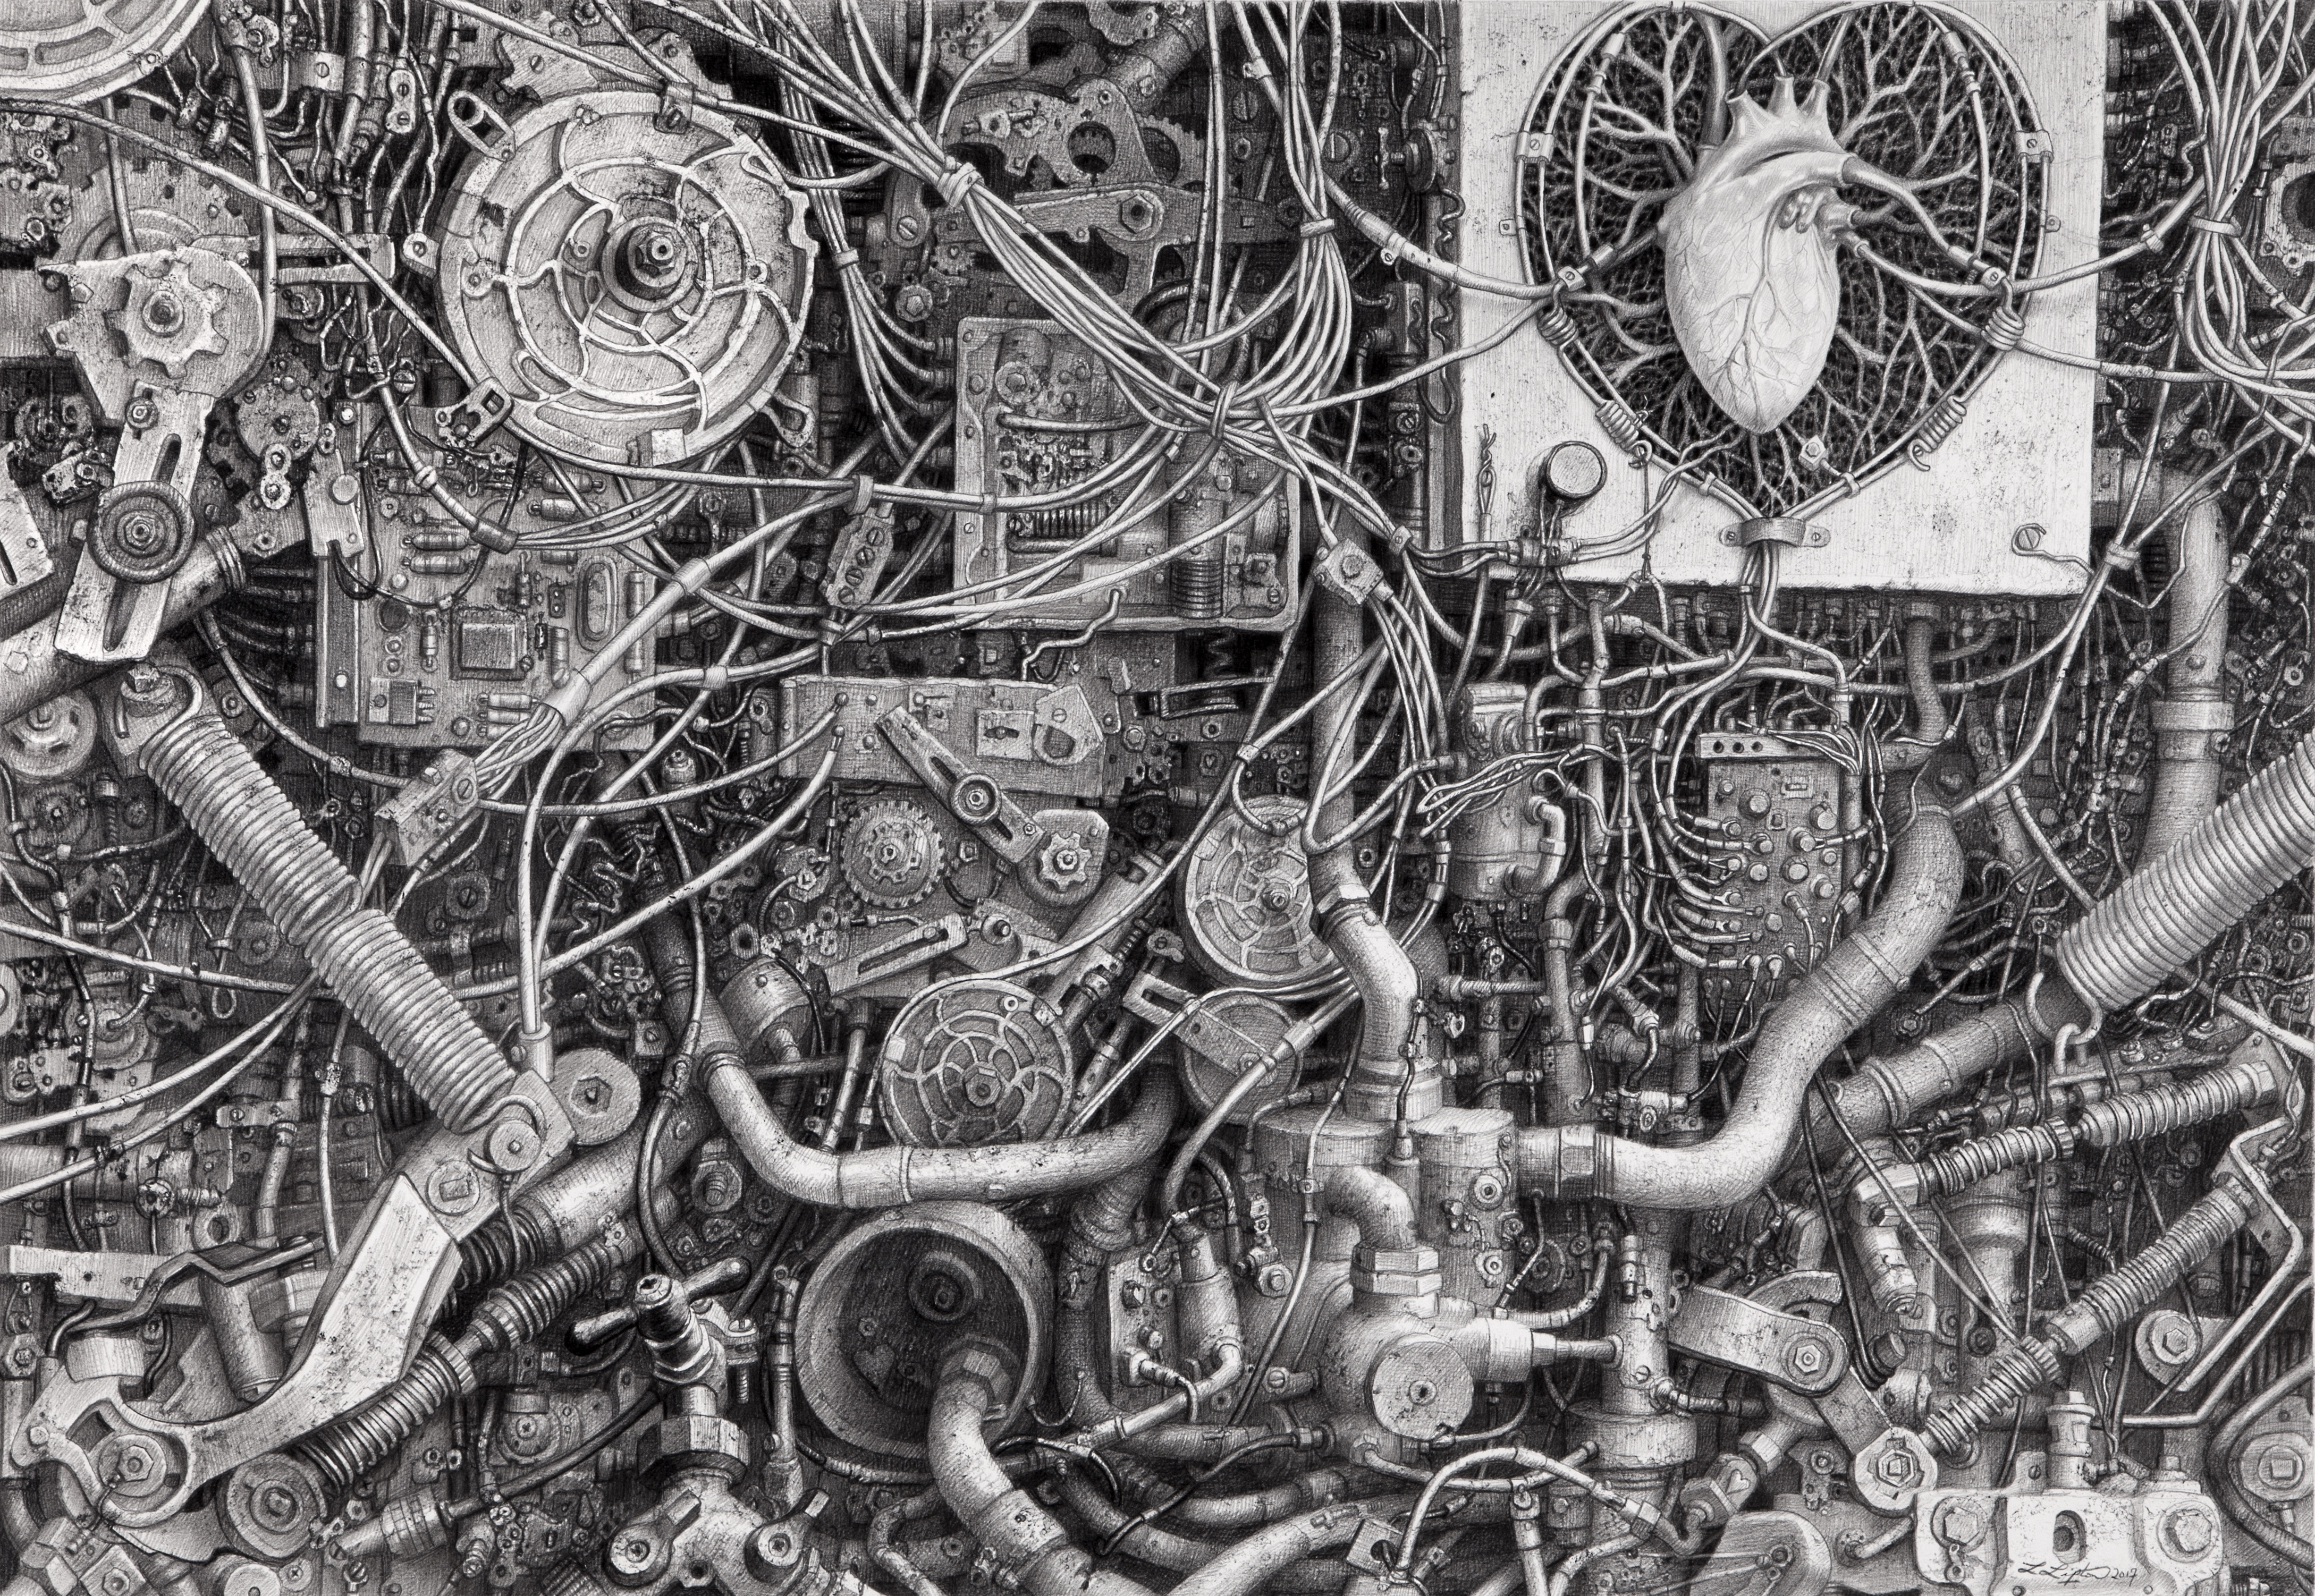 Laurie Lipton drawing, technology, dystopia, pencil drawing, contemporary art, love, art lovers, art collectors, art curators, black and white